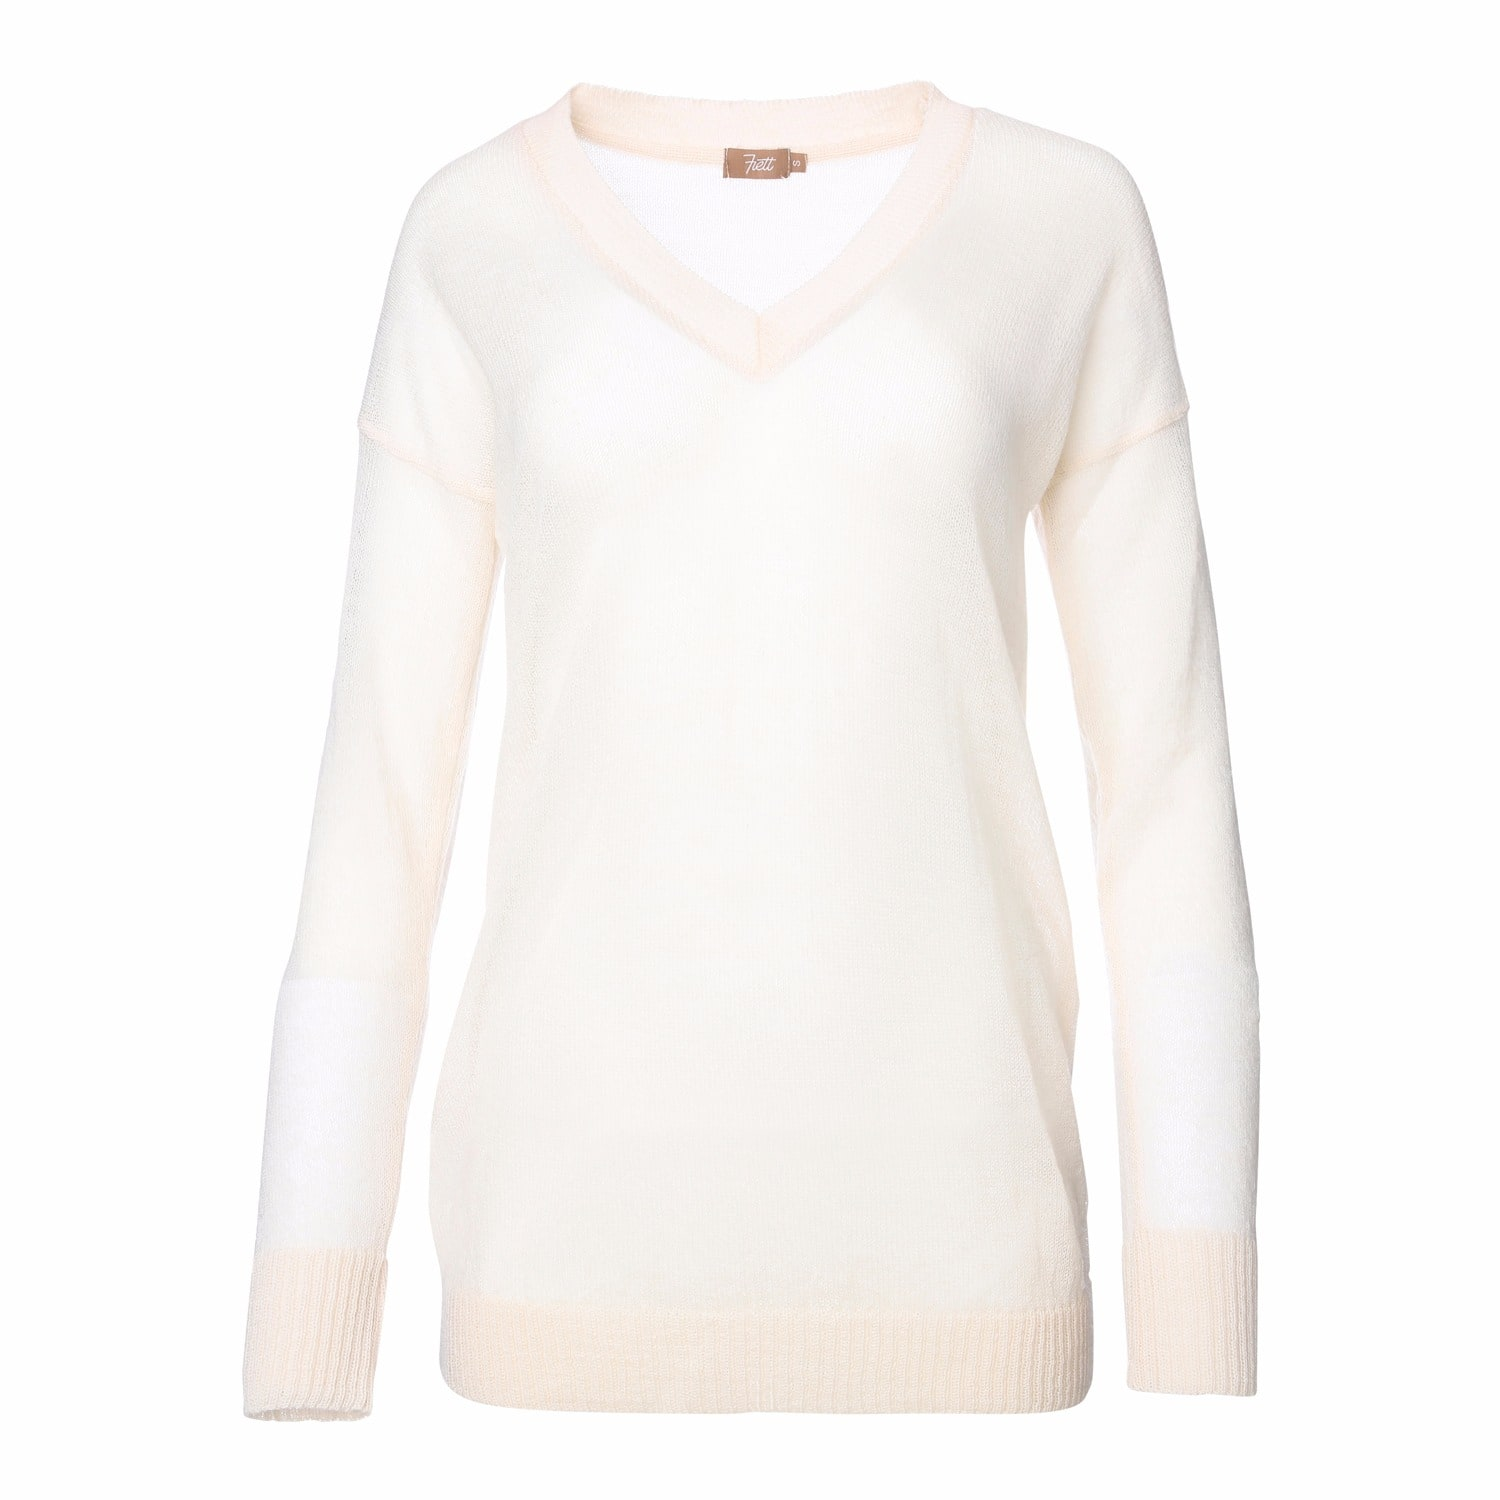 Frett Slow-Made Knitwear - Airy Mohair Sweater Off-White